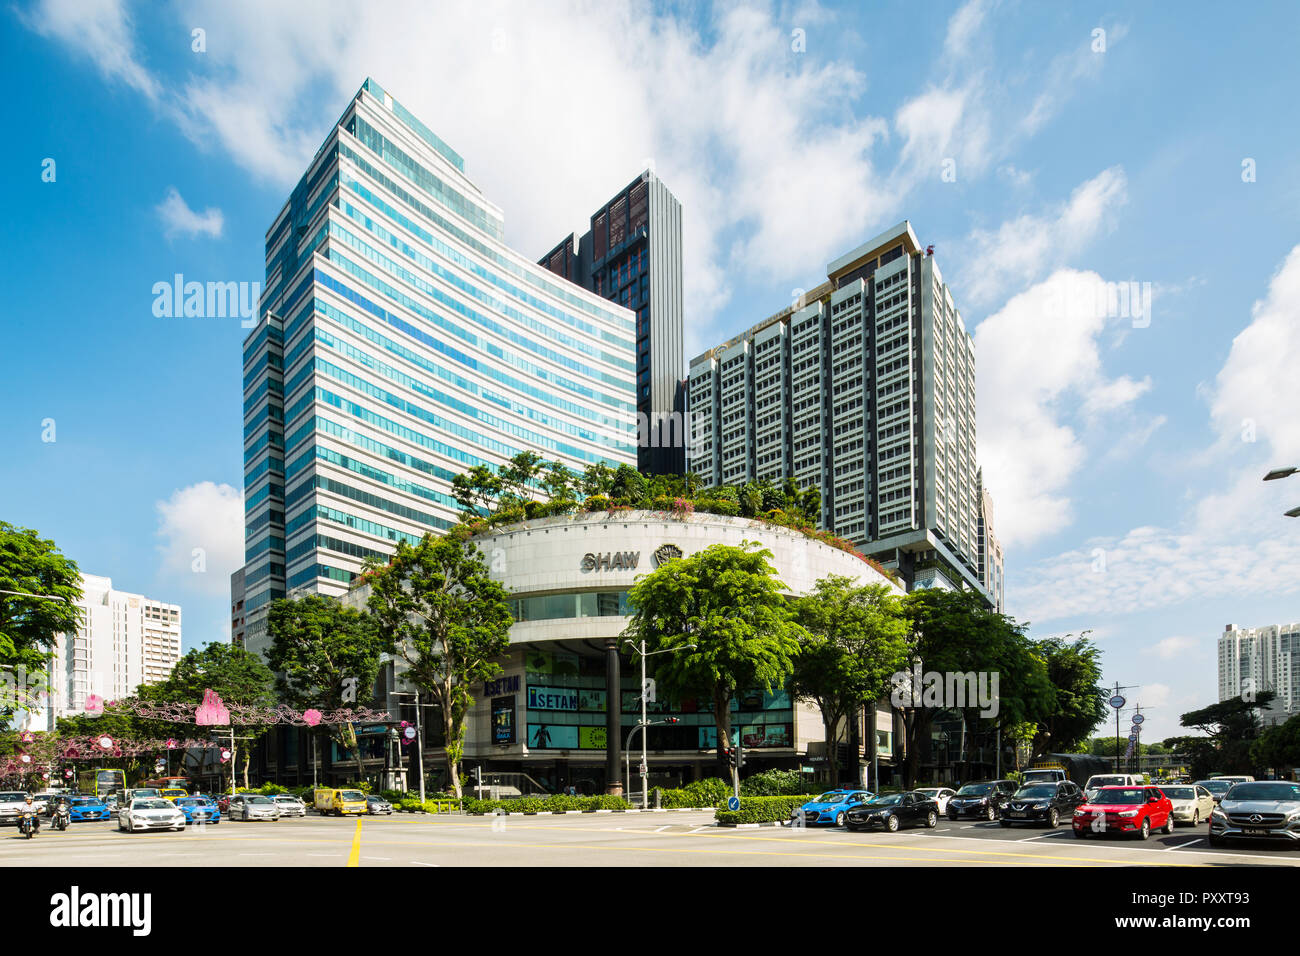 View of shopping malls and office buildings located at Orchard Road, Singapore. - Stock Image